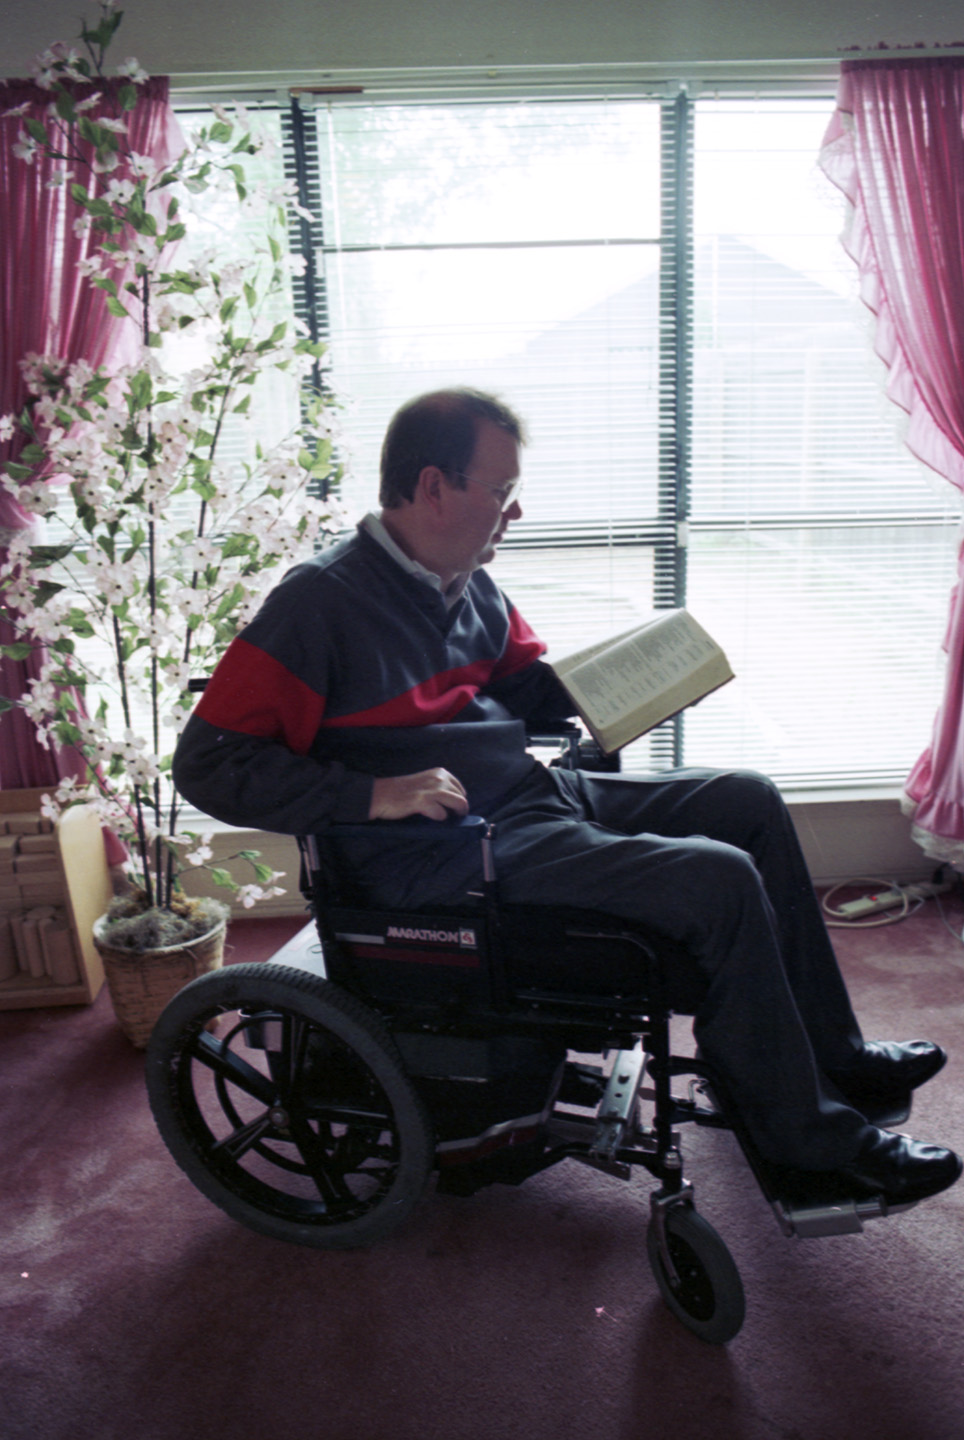 Rev. Robert Sorrels, a quadriplegic, has given up on finding a position as pastor for the Southern Baptist Convention; he takes time out from studying the computer for Bible reading.